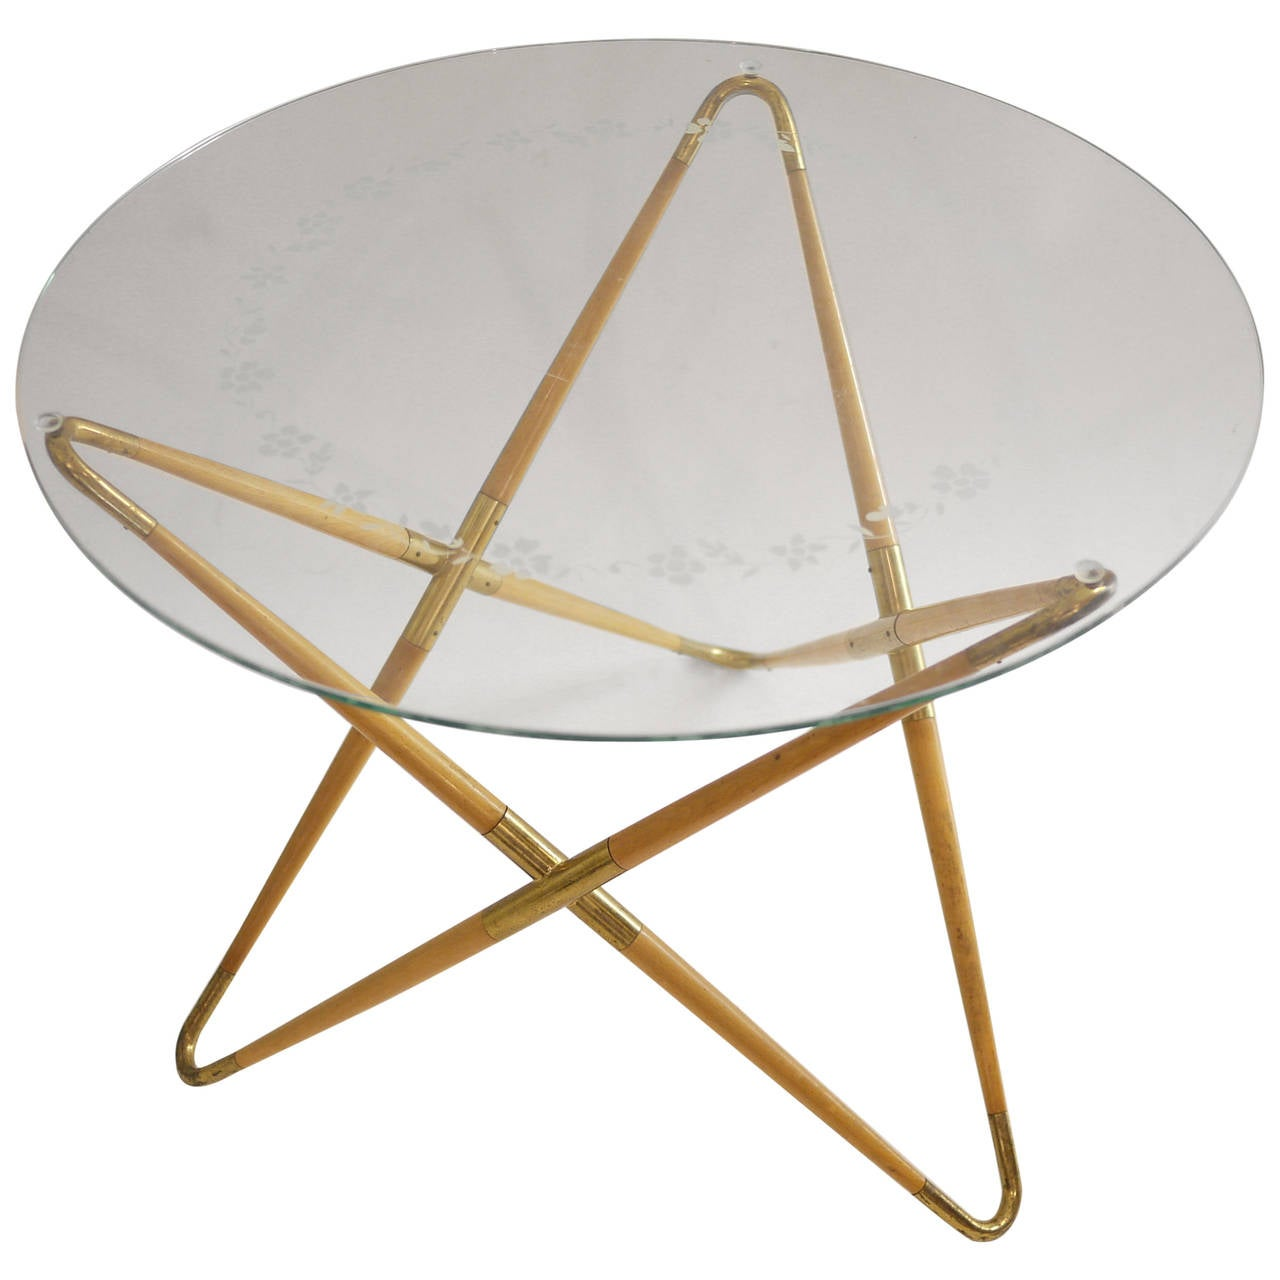 Cesae Lacca Coffee table